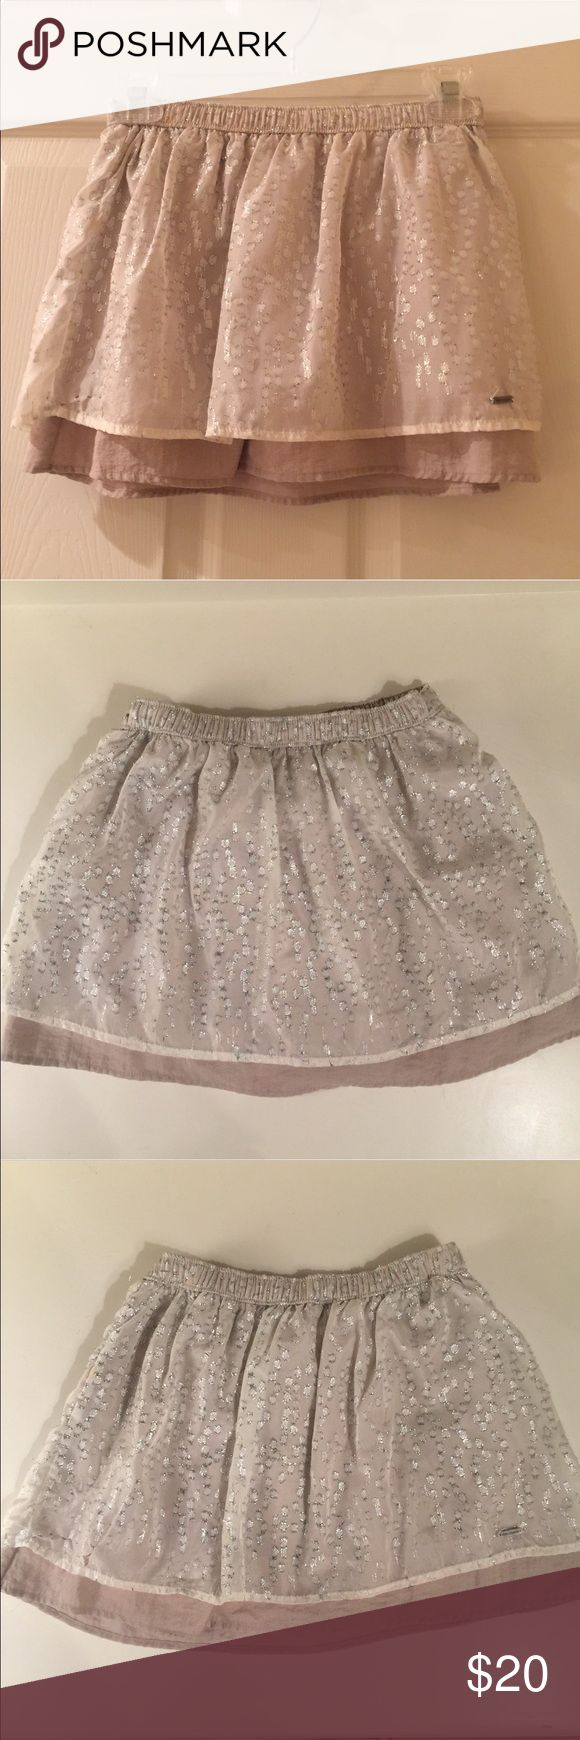 Abercrombie girls skirt size medium Abercrombie girls skirt size medium. Abercombie Kids Bottoms Skirts